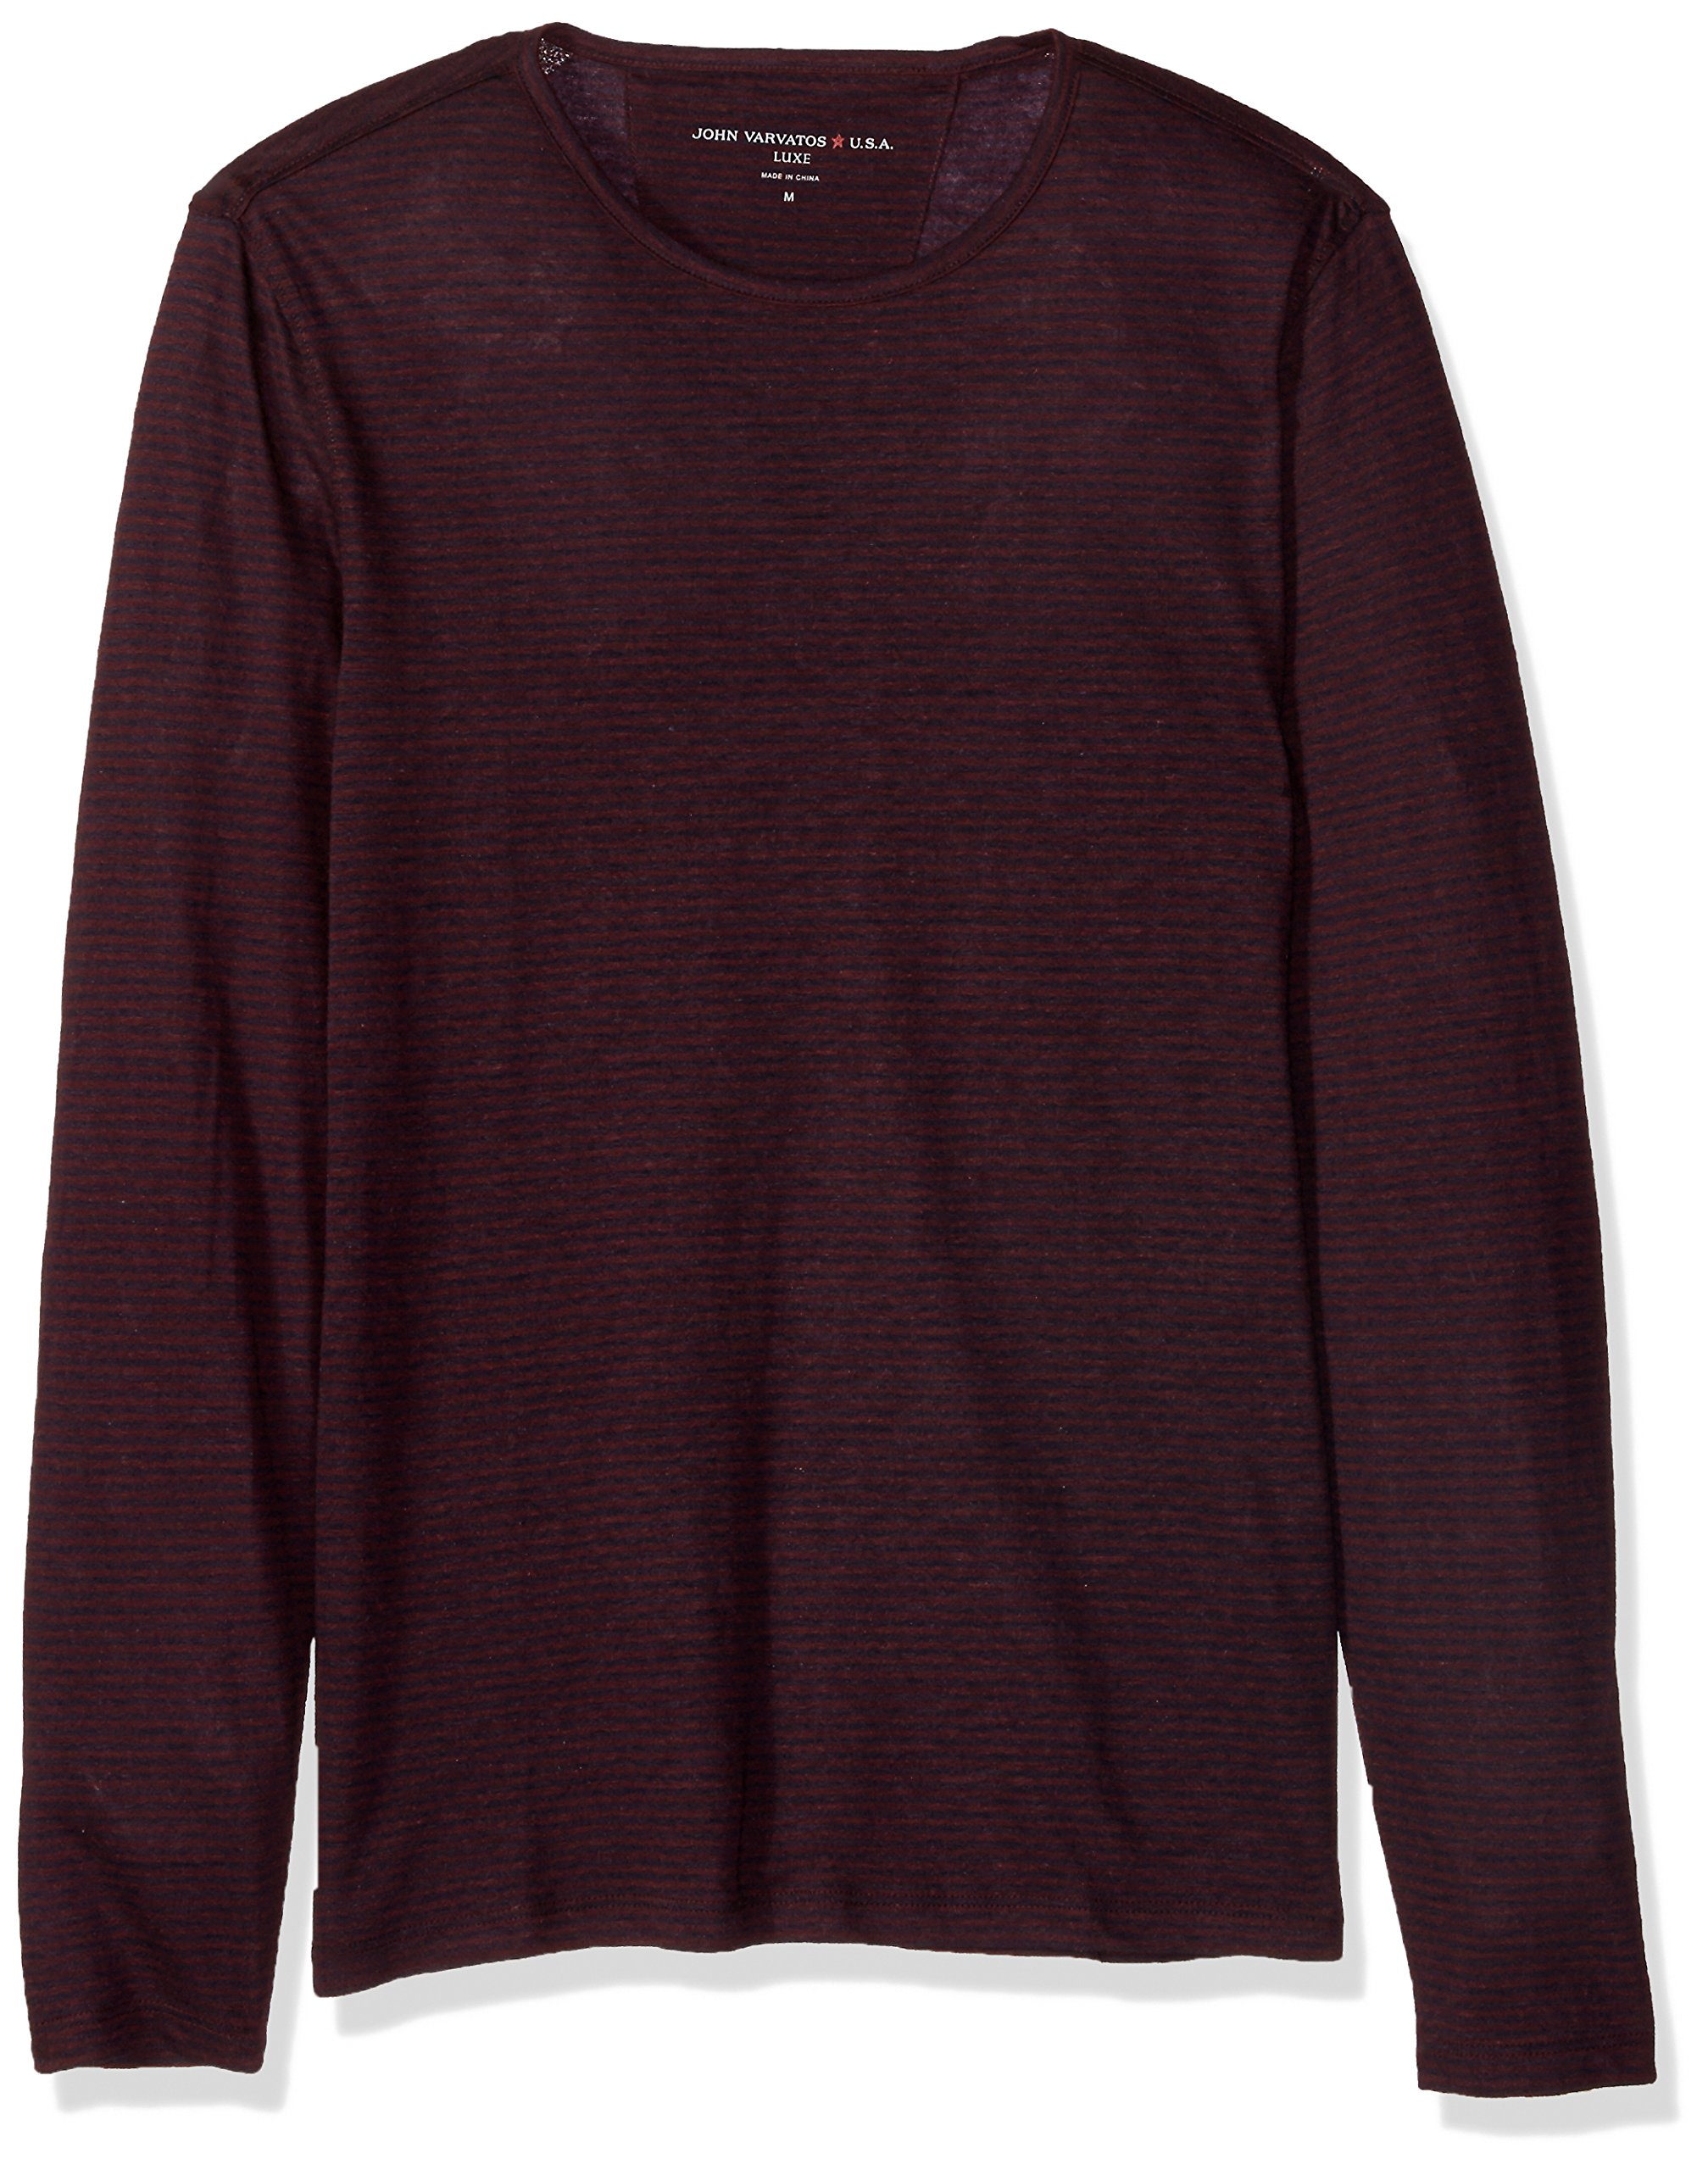 John Varvatos Men's Long Sleeved Crewneck BKZ6B, Garnet, Small